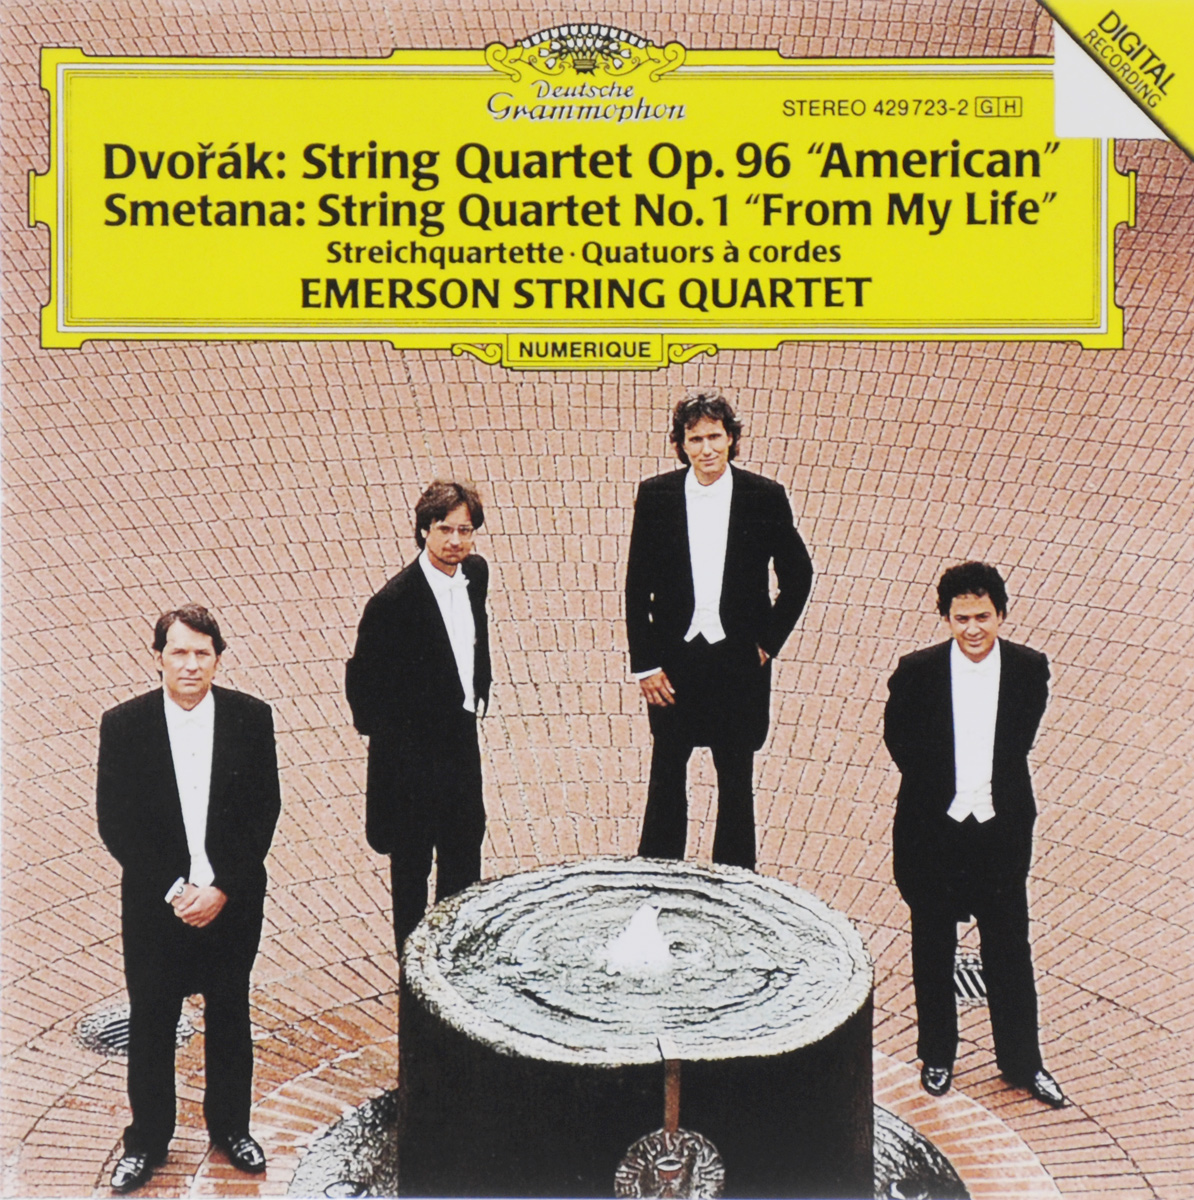 Emerson String Quartet Emerson String Quartet. String Quartet Op. 96 American / String Quartet No. 1 From My Life фартук с полной запечаткой printio цветы ян ван хёйсум